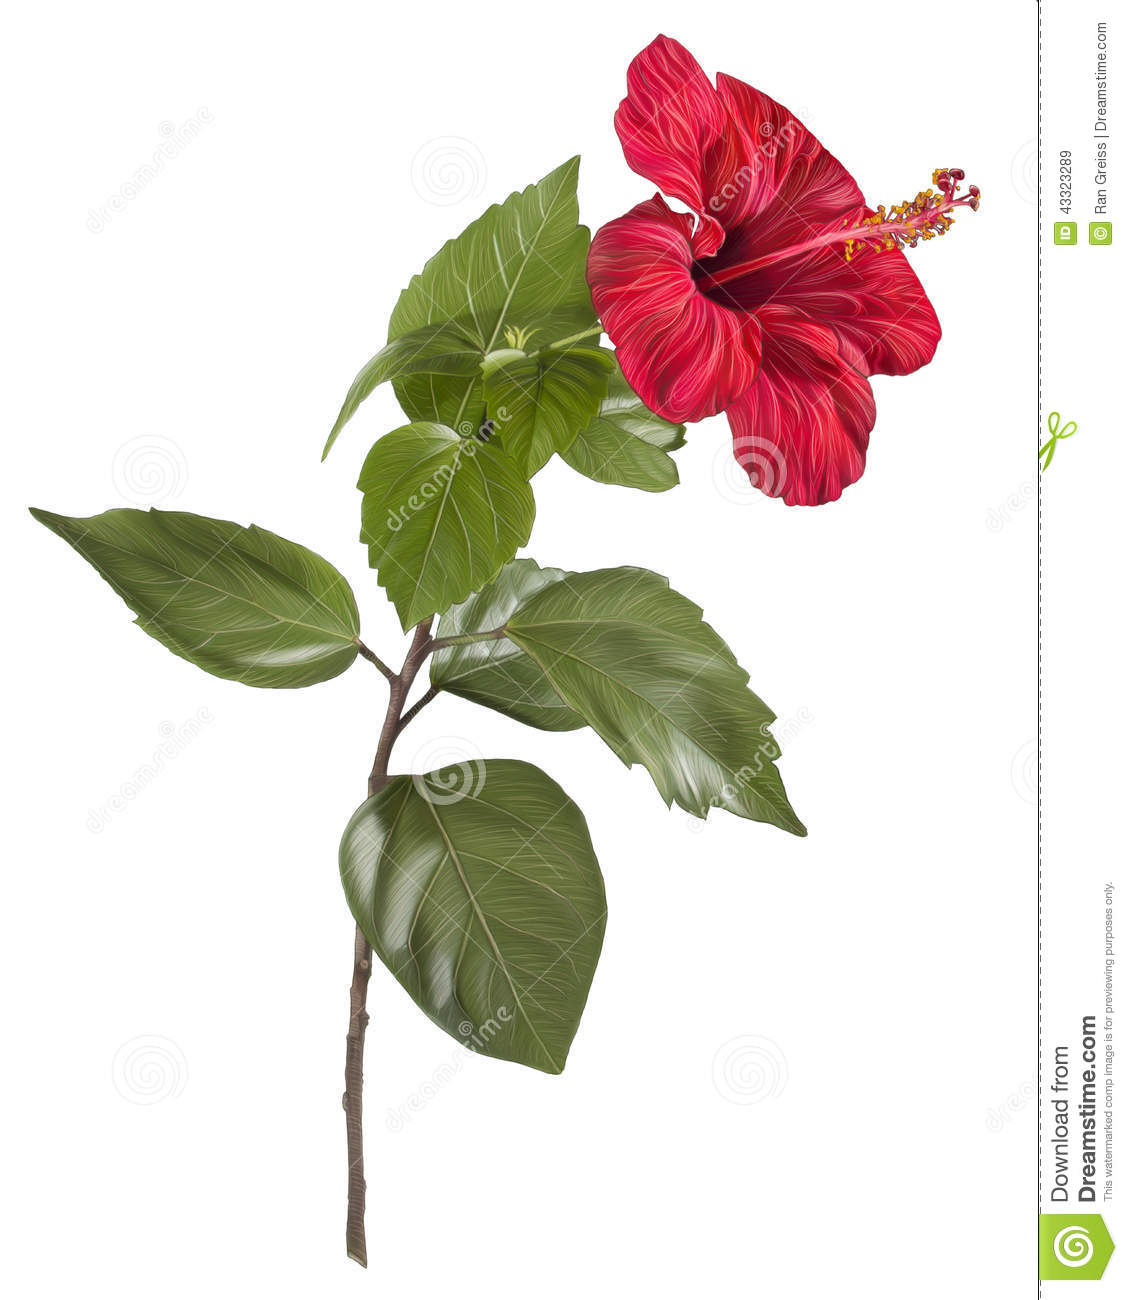 Painting of hibiscus flower on white background stock illustration painting of hibiscus flower on white background izmirmasajfo